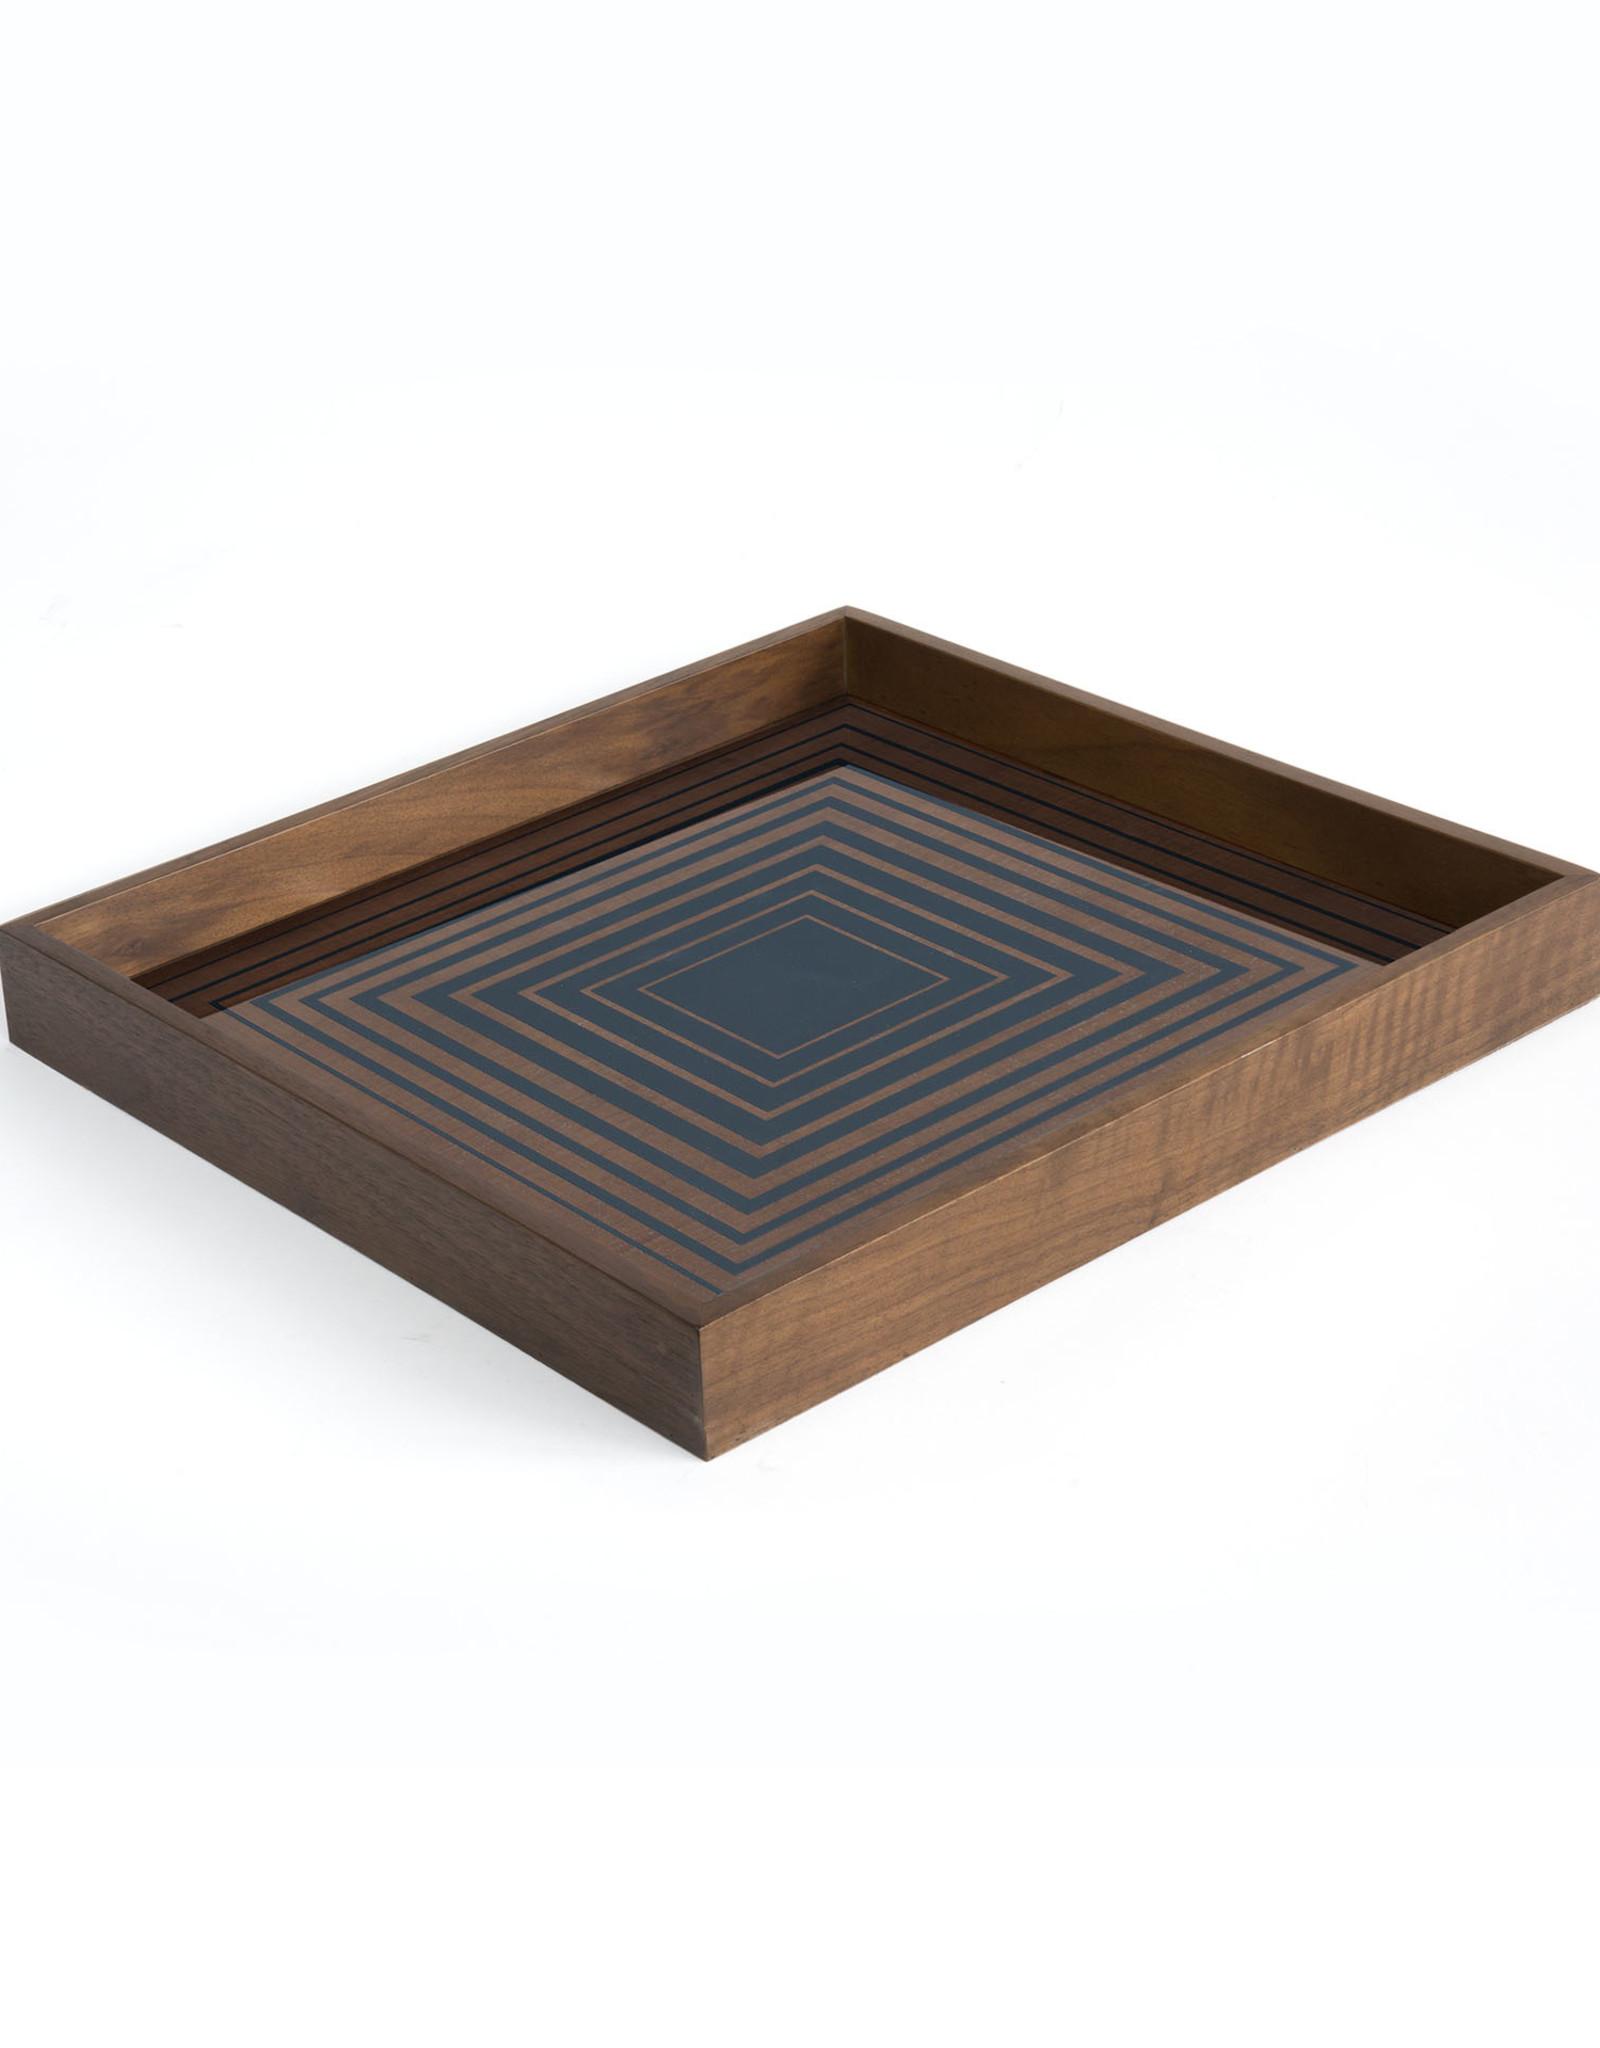 Ink Square glass tray - square - S 15 x 15 x 2